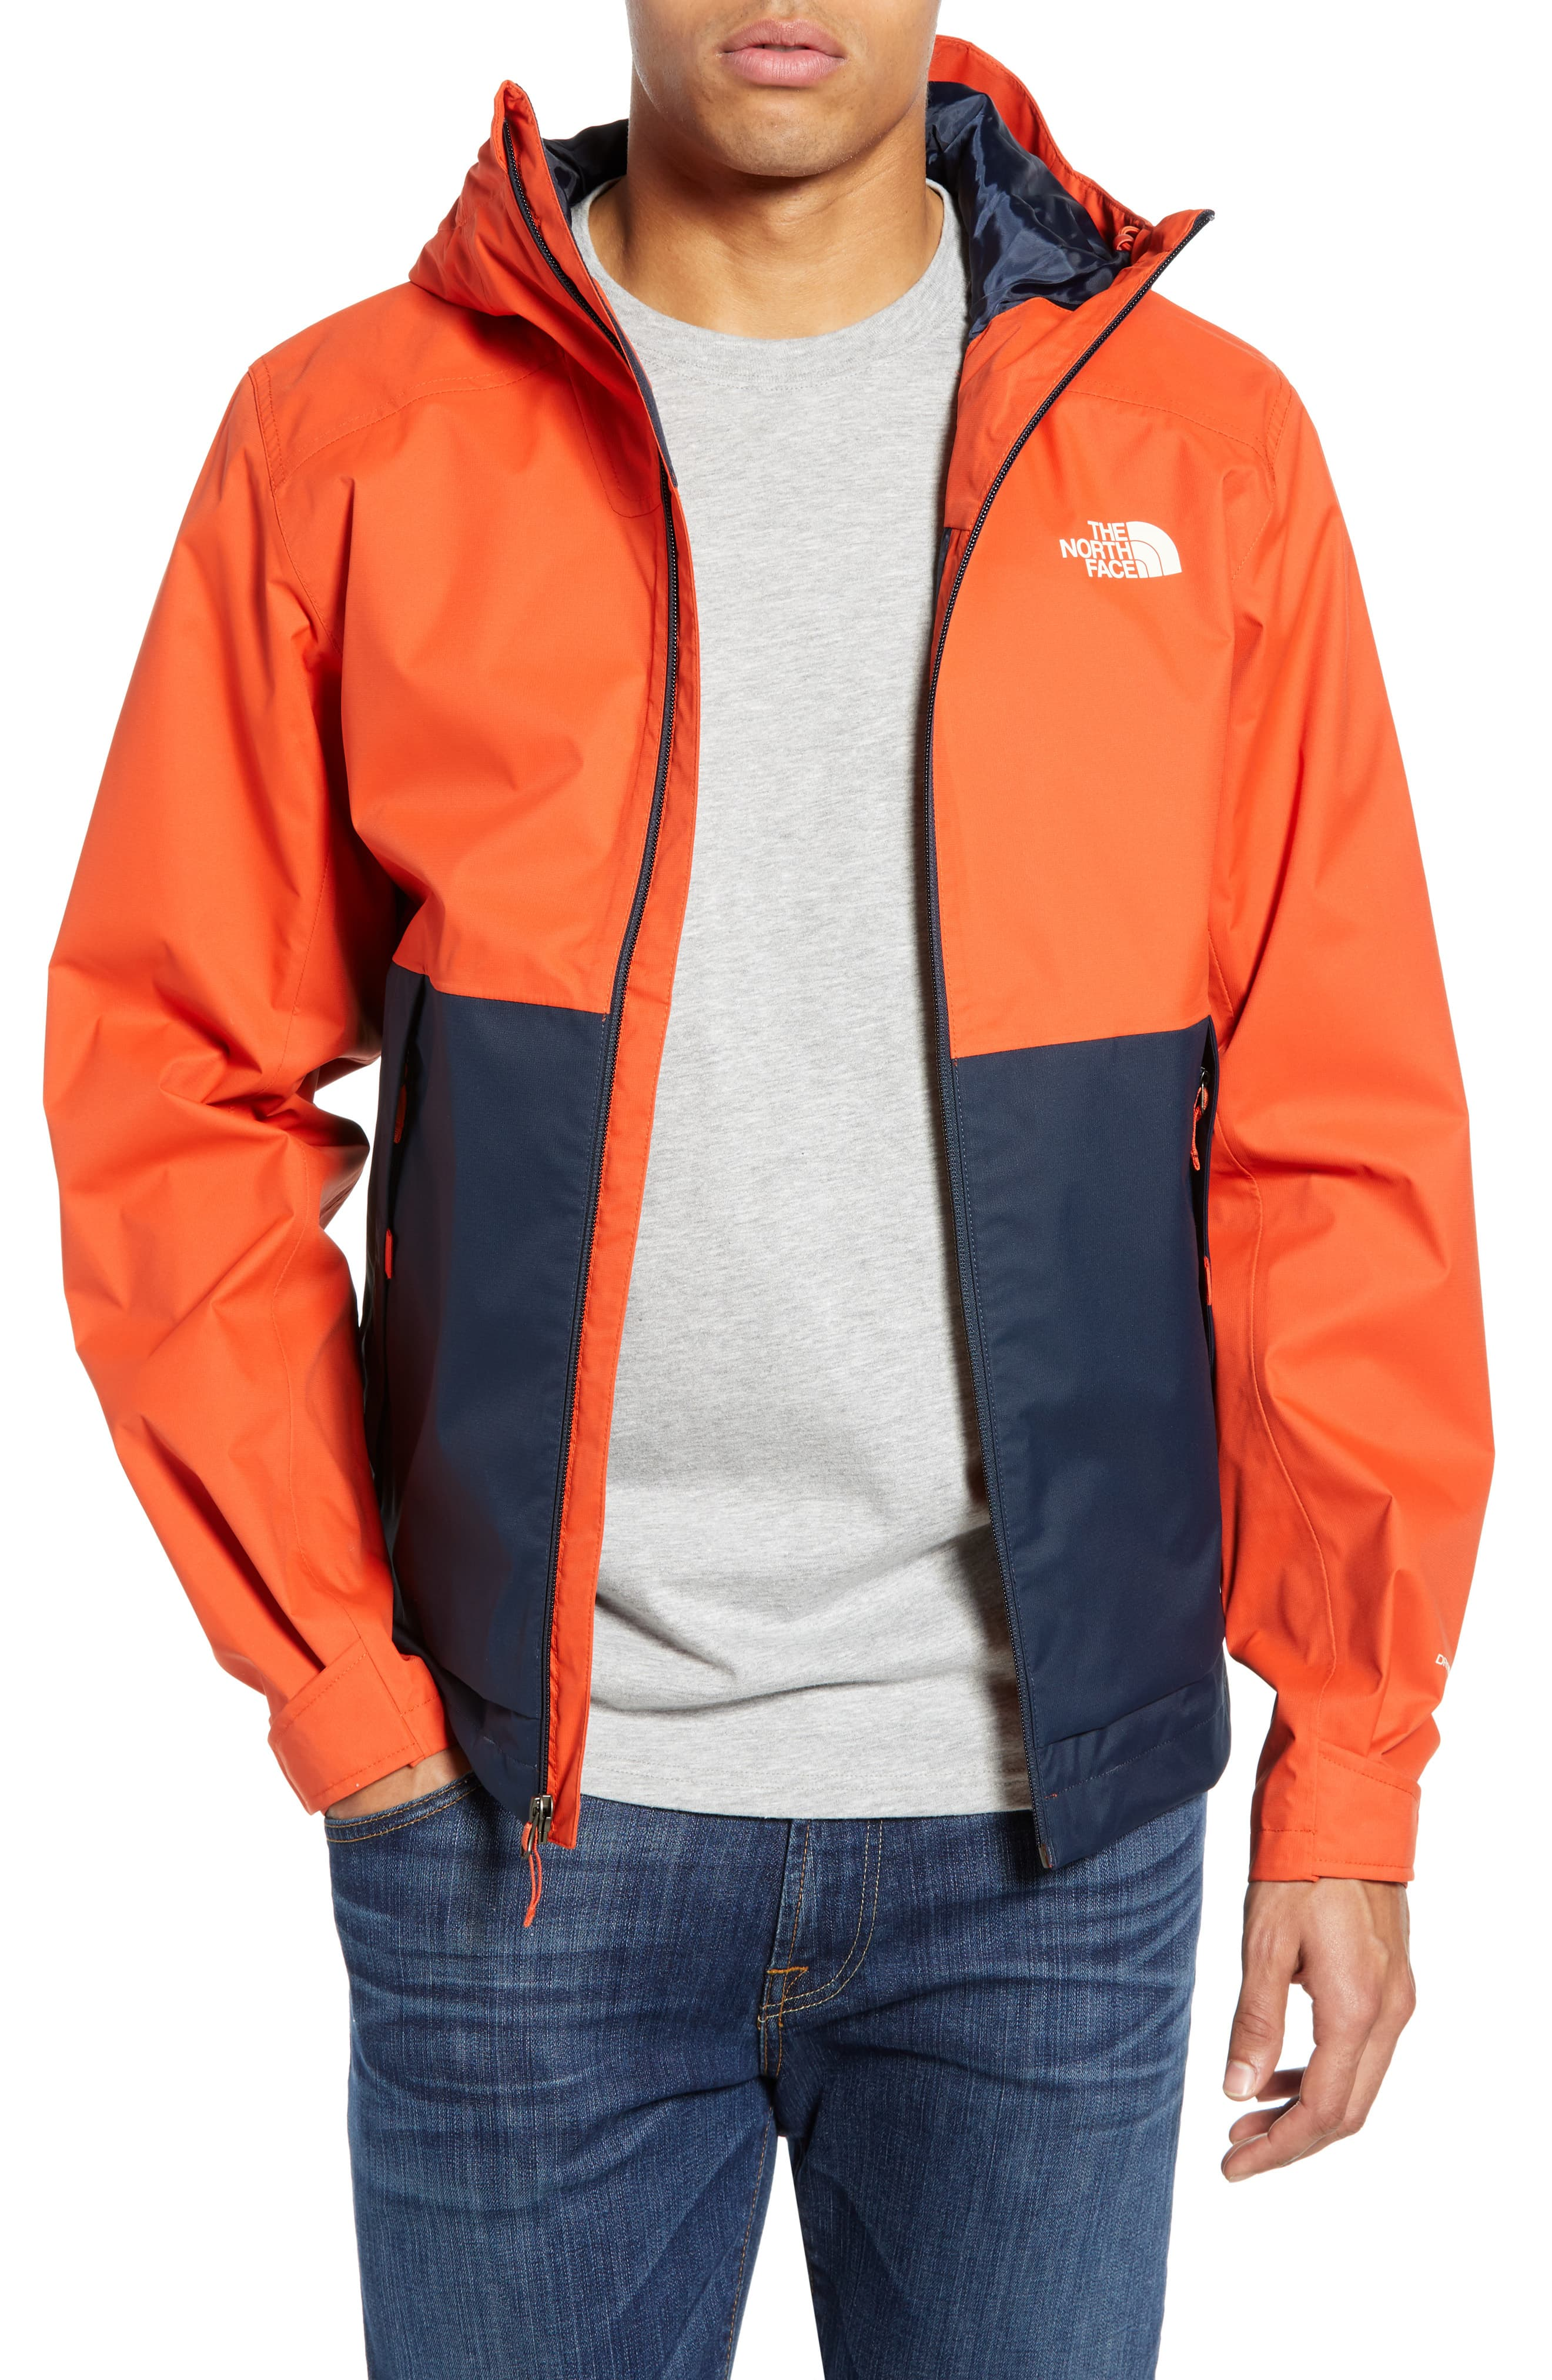 The North Face Millerton Hooded Jacket Nordstrom Hooded Jacket Jackets The North Face [ 4048 x 2640 Pixel ]